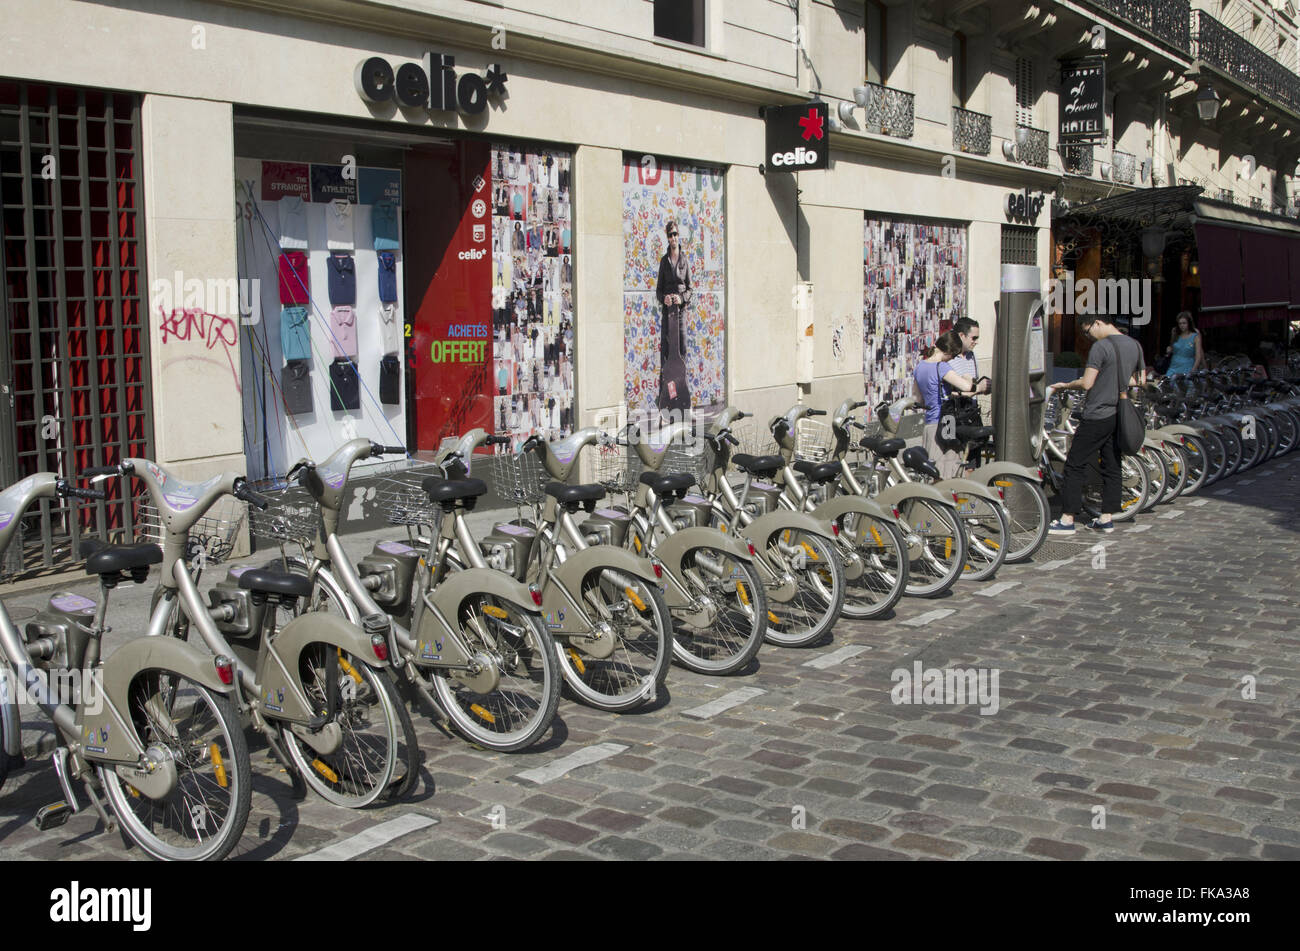 Bicycles for shared Lease in Paris street - Stock Image